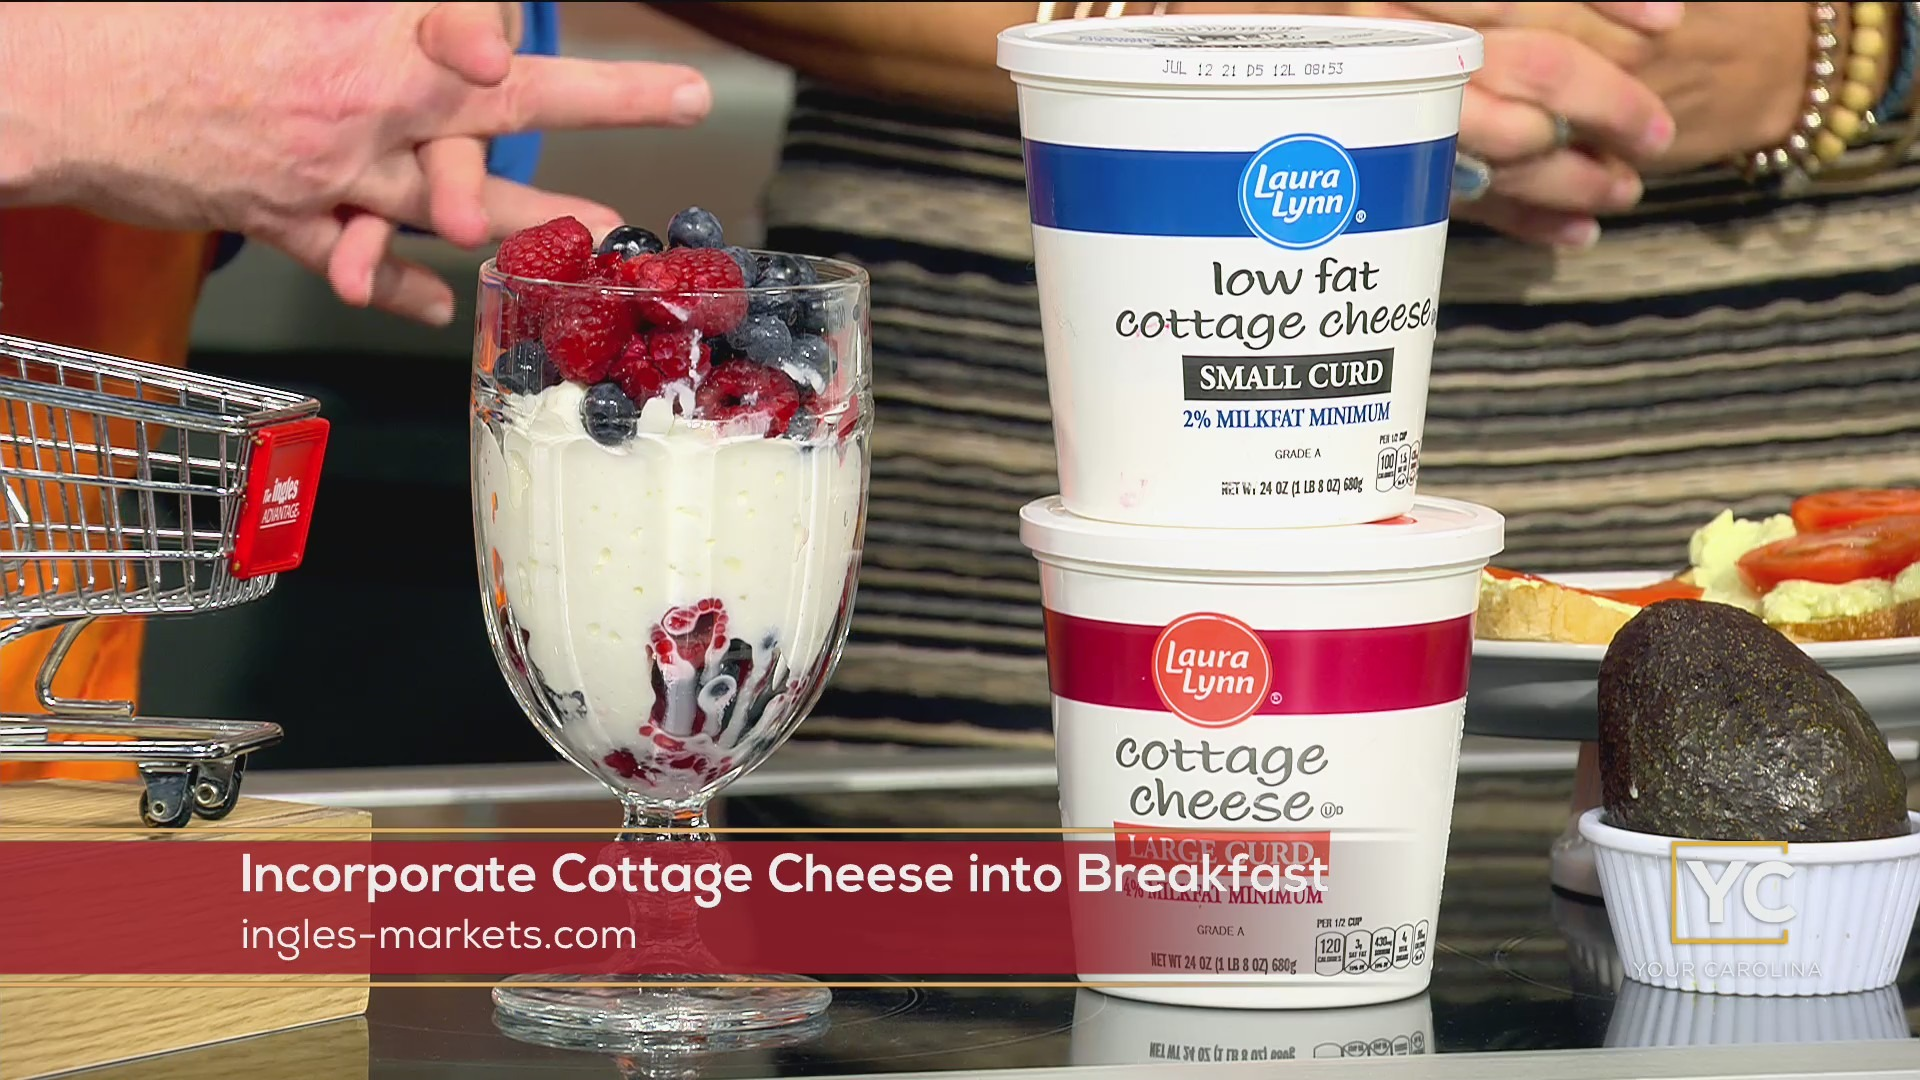 Incorporate Cottage Cheese into Breakfast